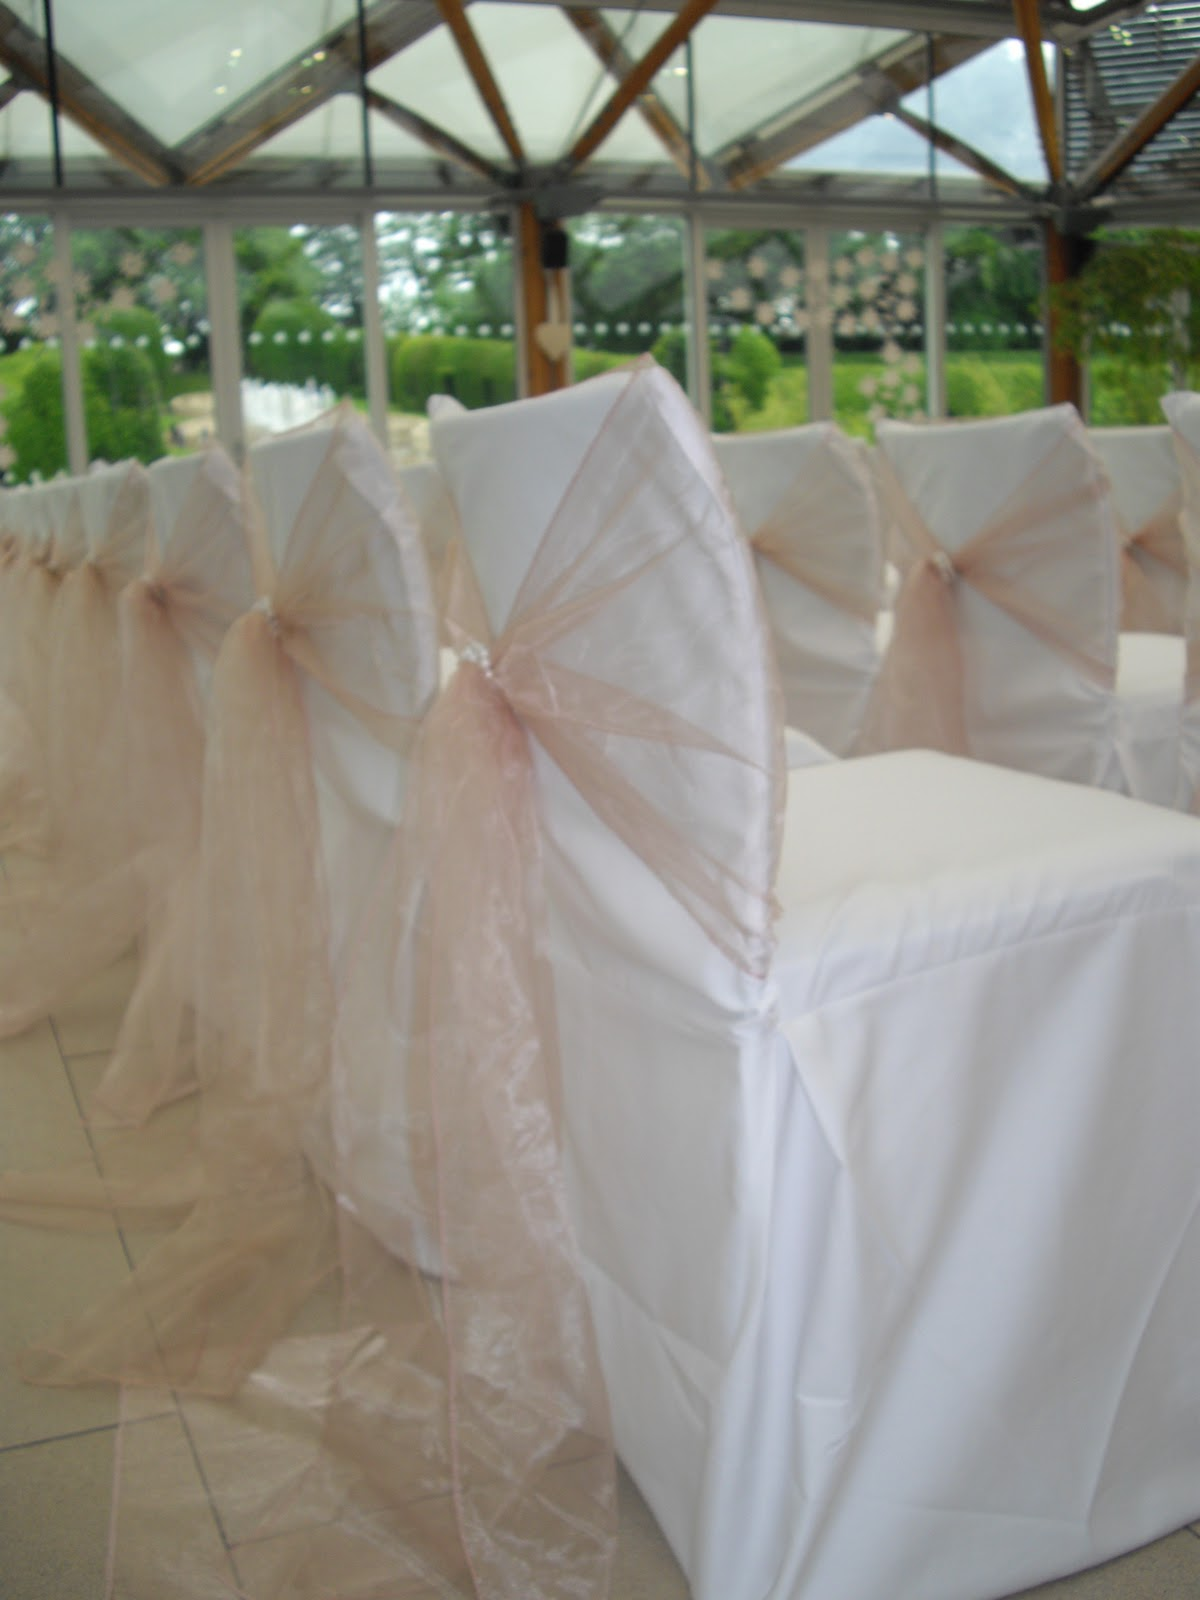 simply bows and chair covers newcastle starfish wedding decorations january 2012 antique pink organza tied with vintage pearls by